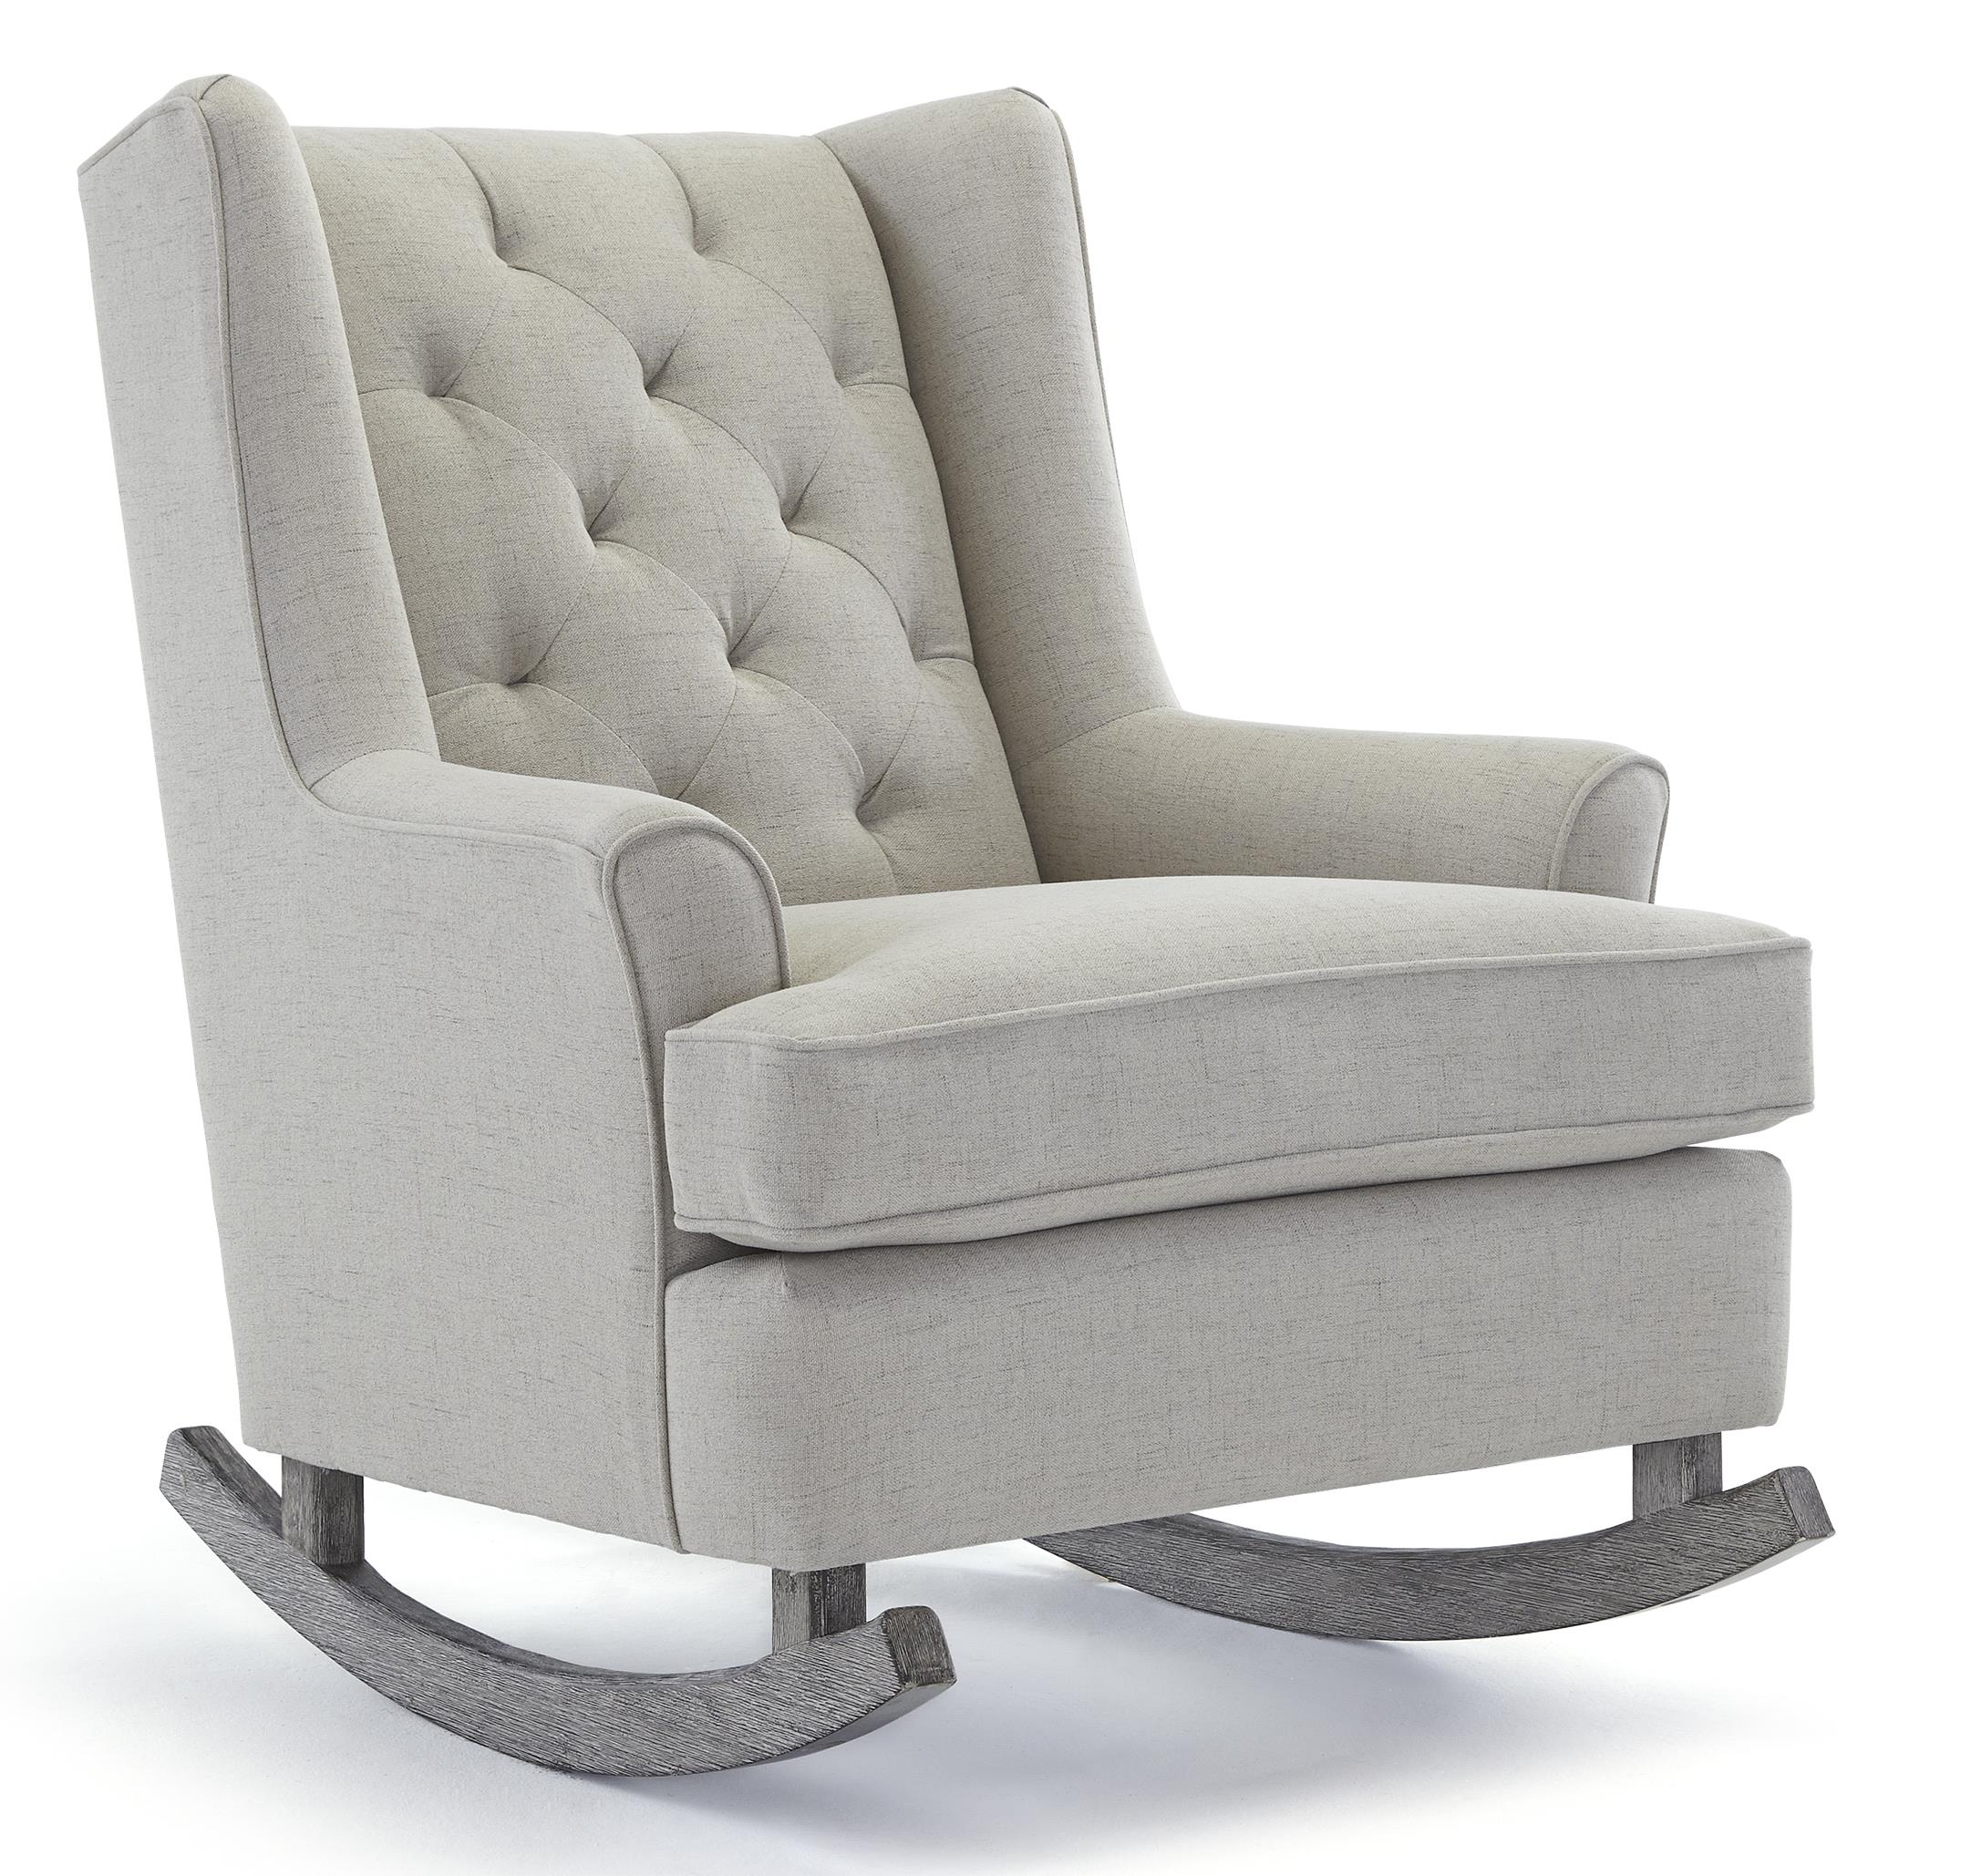 Runner Rockers Paisley Rocking Chair by Best Home Furnishings at Lapeer Furniture & Mattress Center